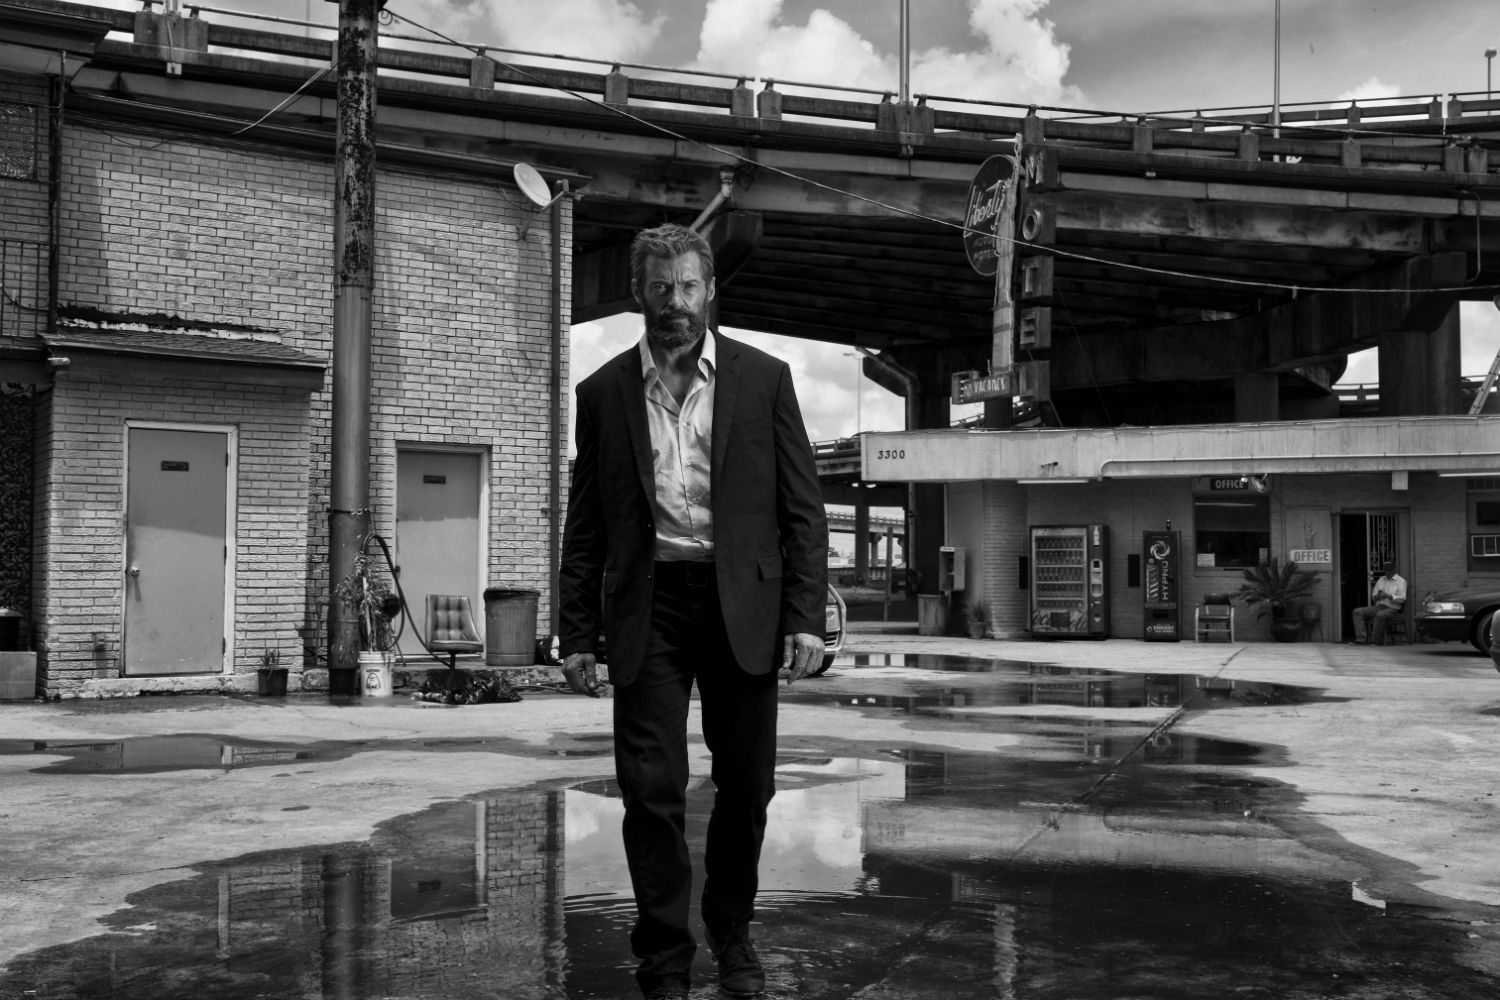 Logan: Black and white version to hit theaters in May